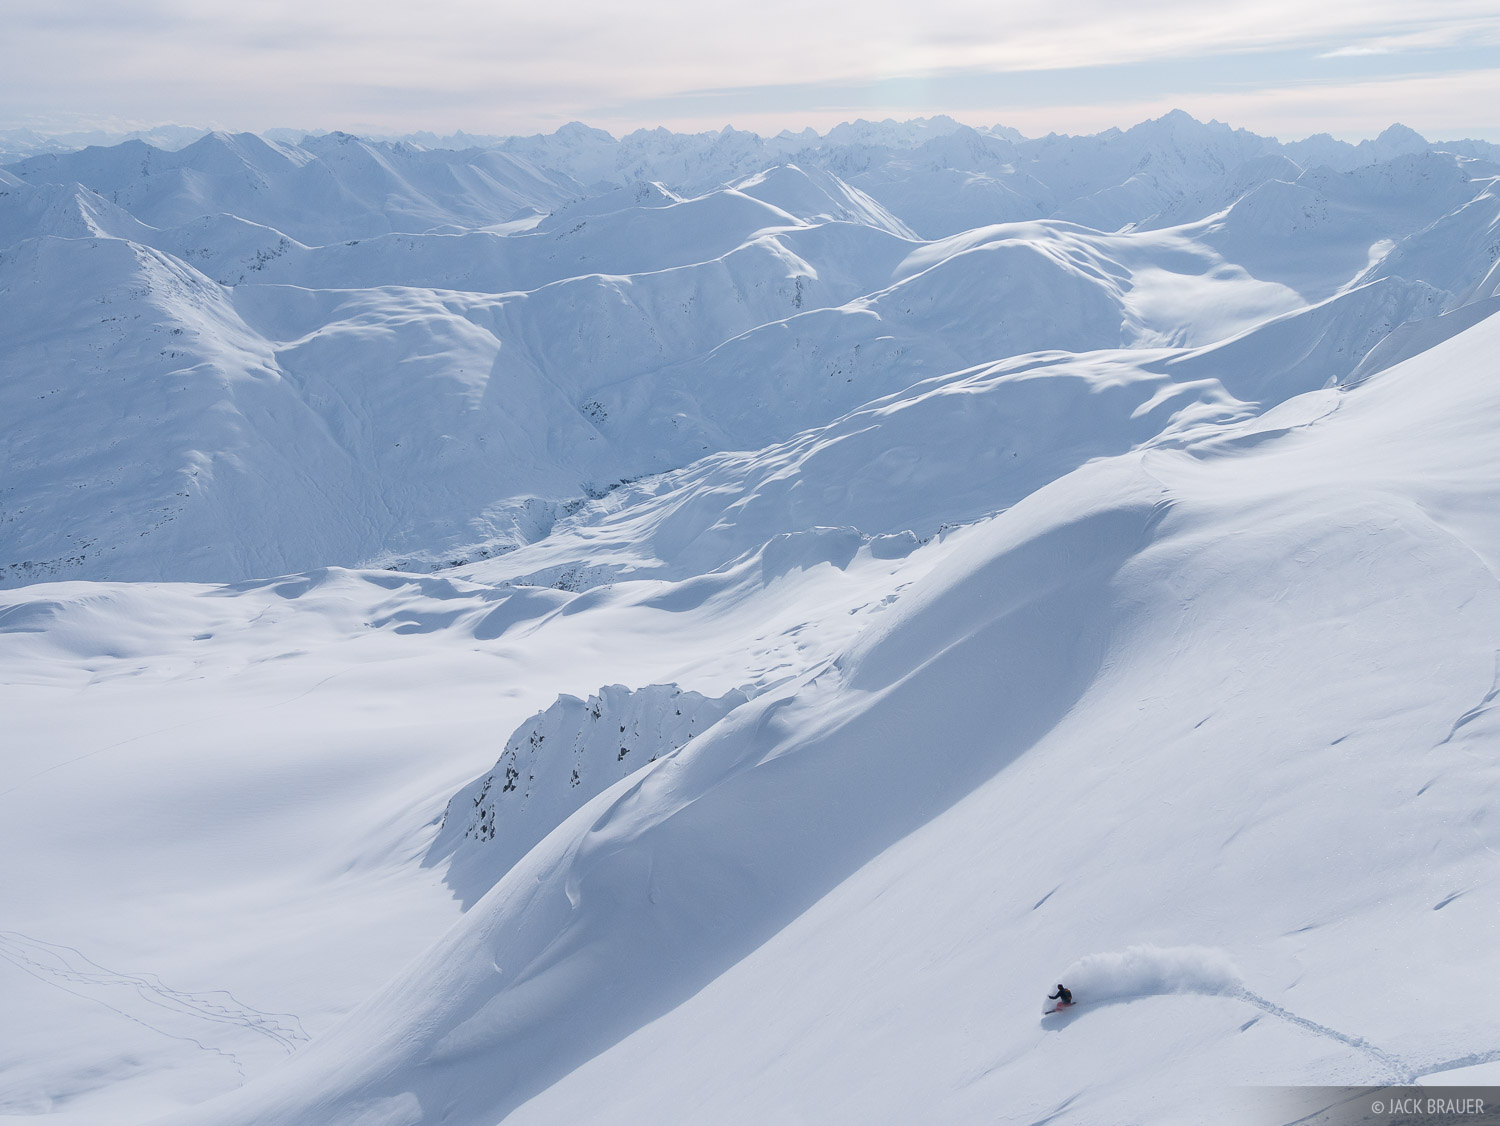 Alaska, Haines, Takhinsha Mountains, snowboarding, photo